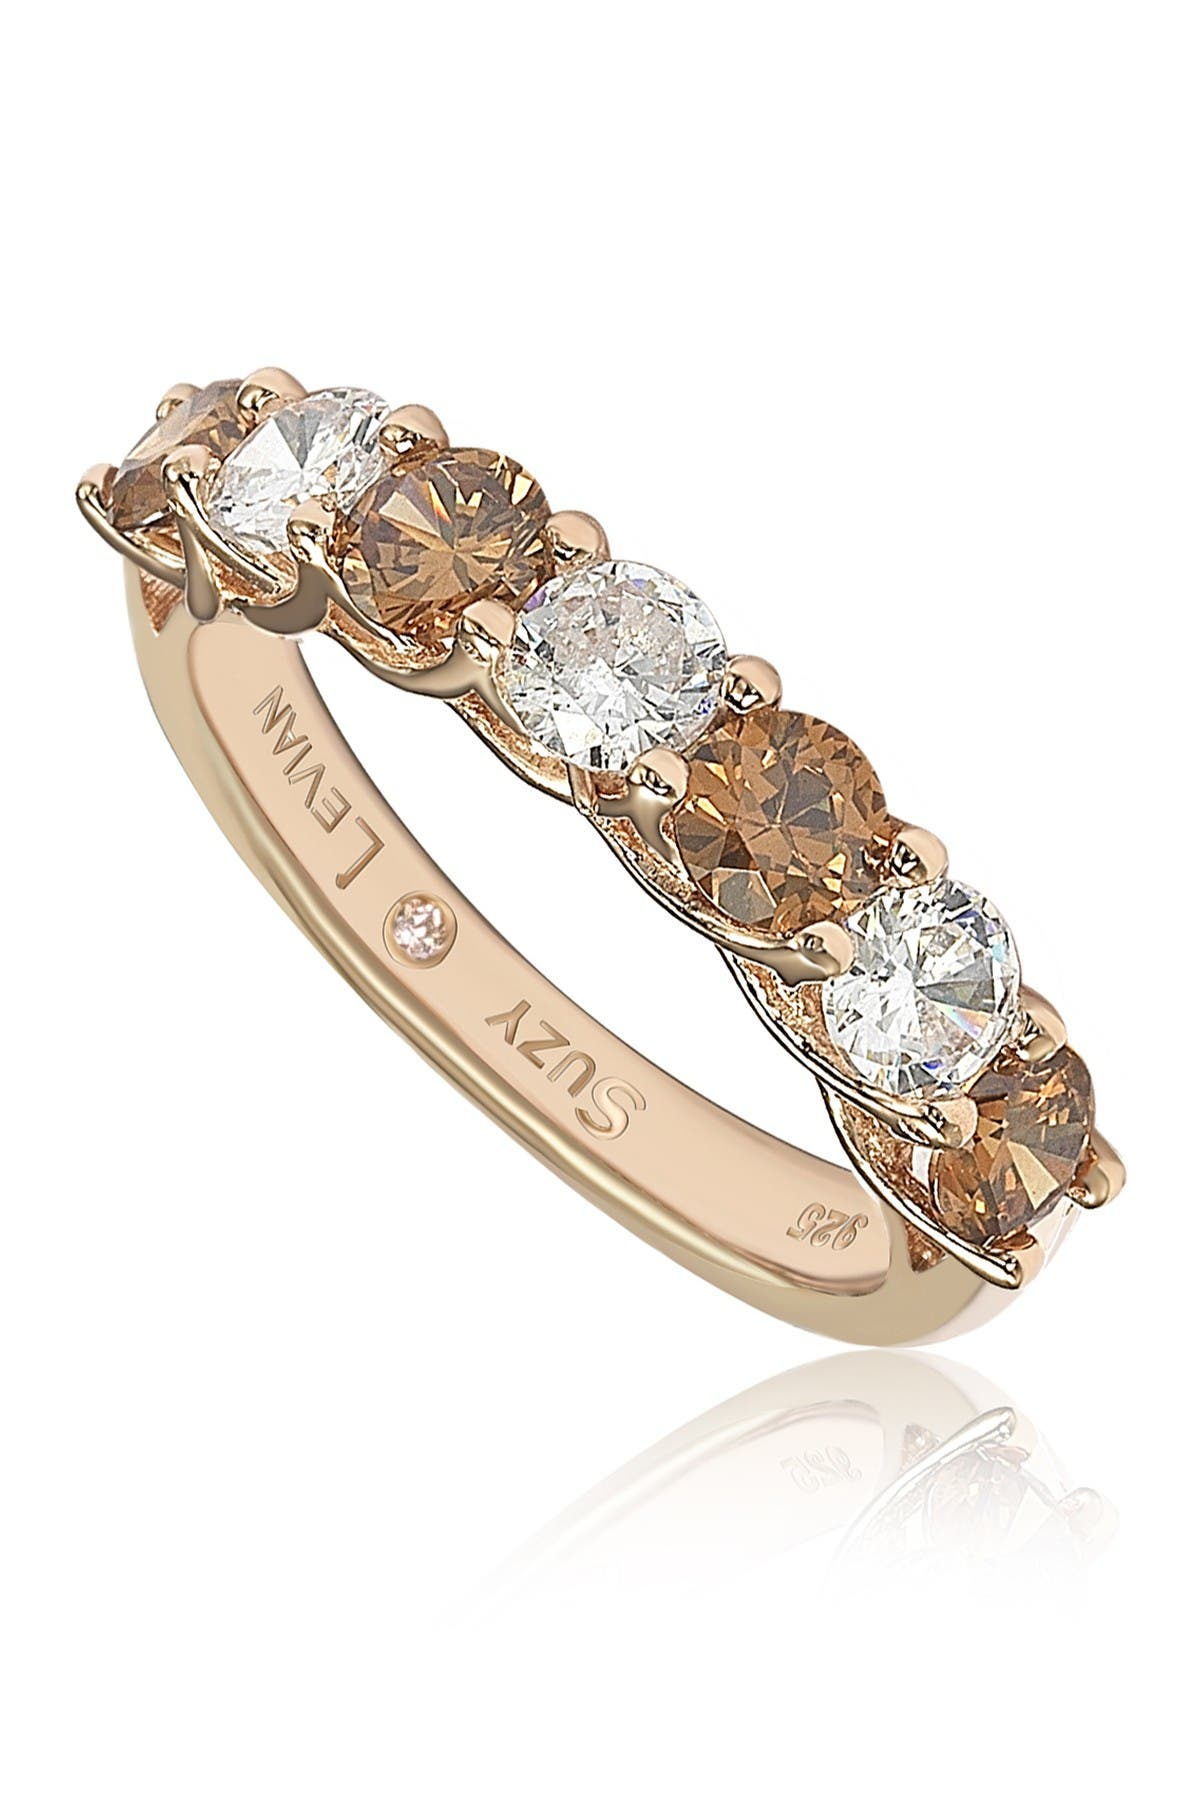 Image of Suzy Levian Rose-Tone Sterling Silver Prong Set Round-Cut CZ Band Ring